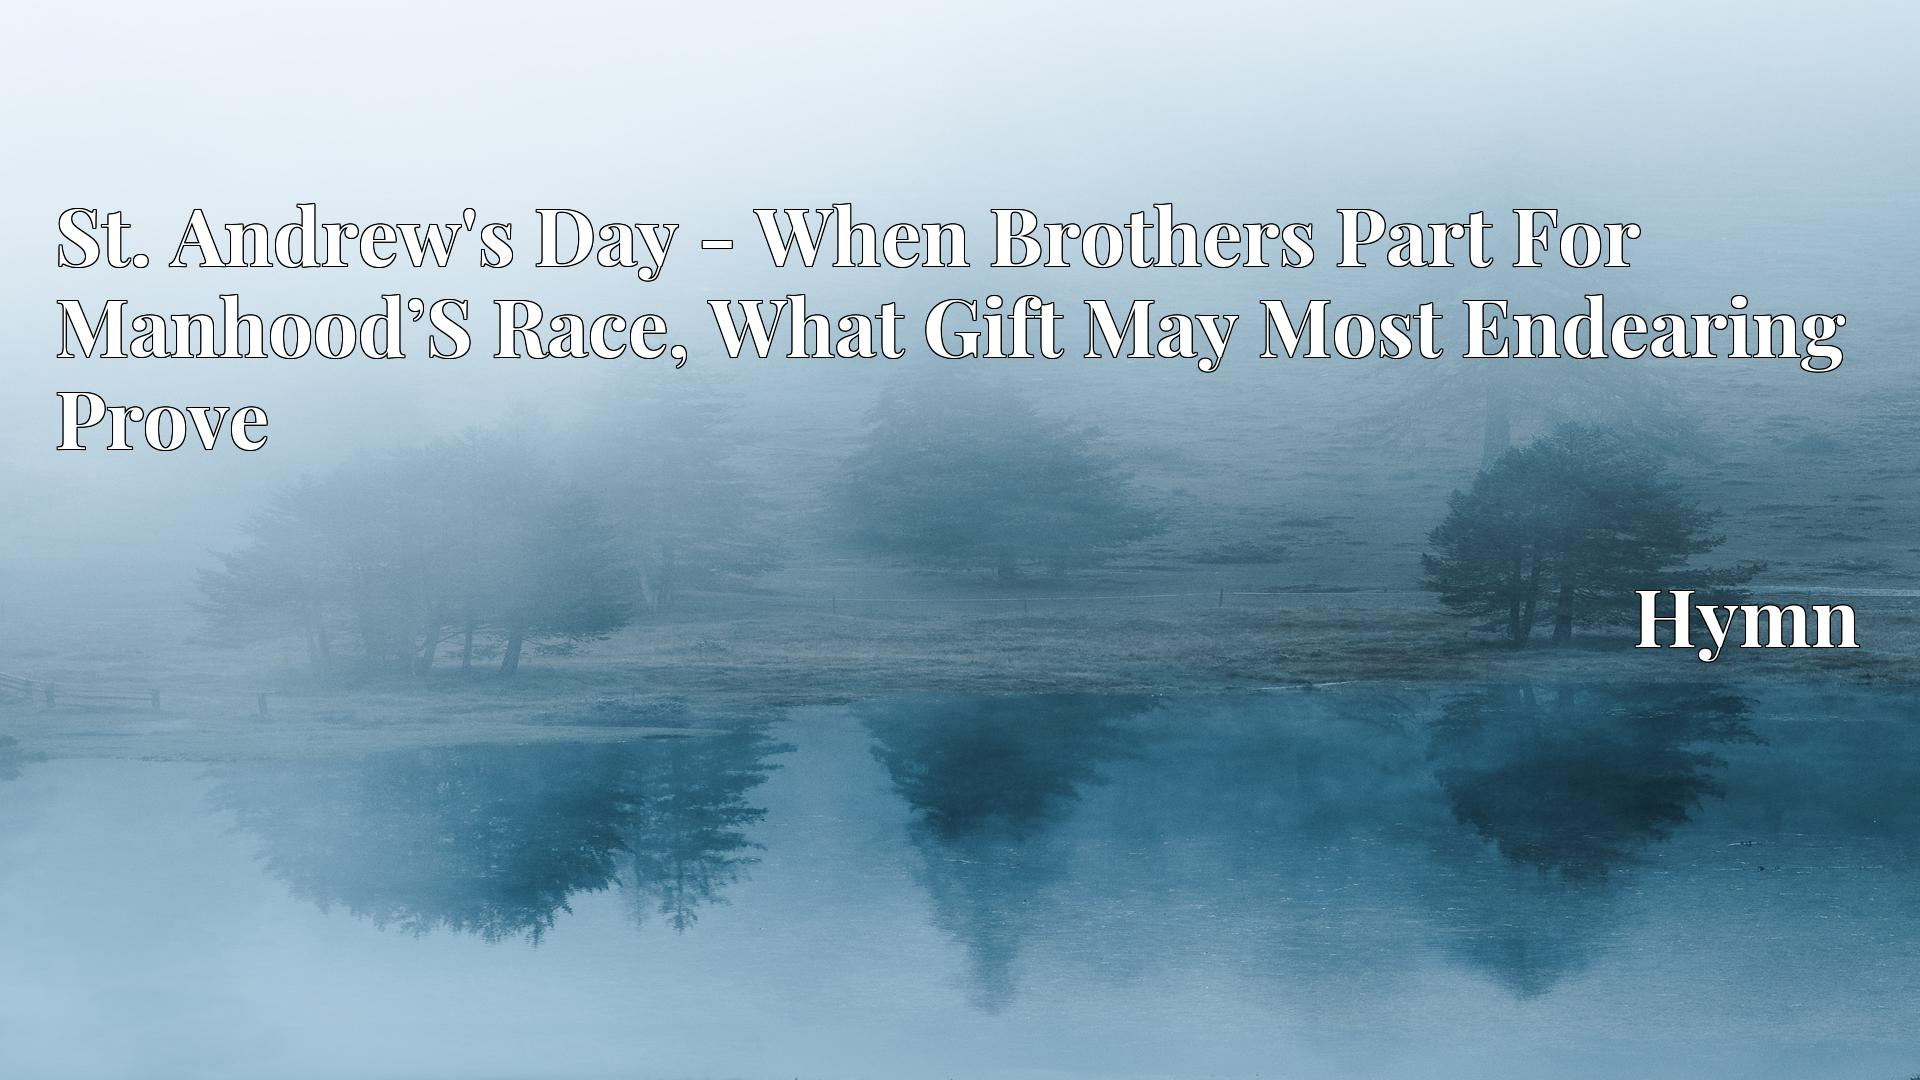 St. Andrew's Day - When Brothers Part For Manhood'S Race, What Gift May Most Endearing Prove Hymn